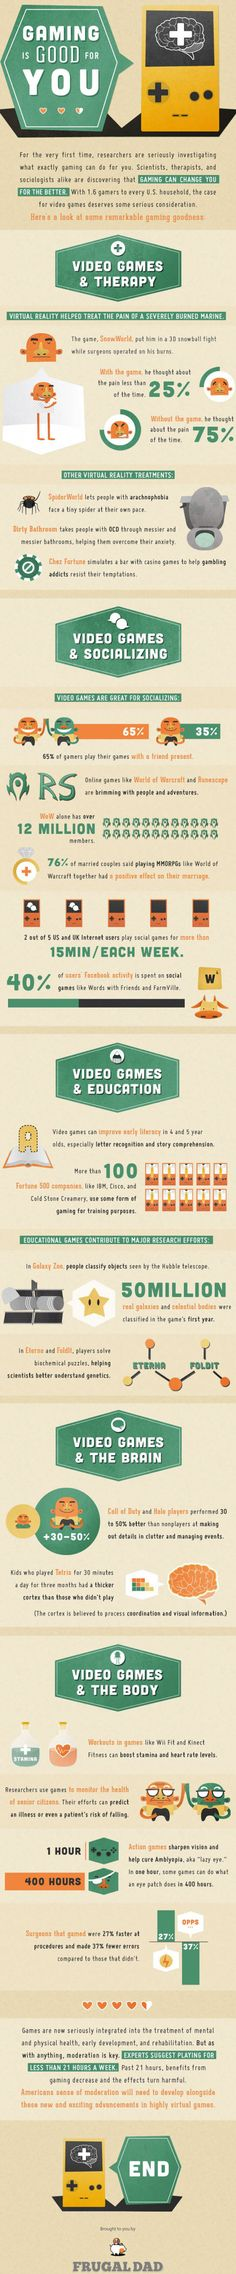 Postive things about gaming.